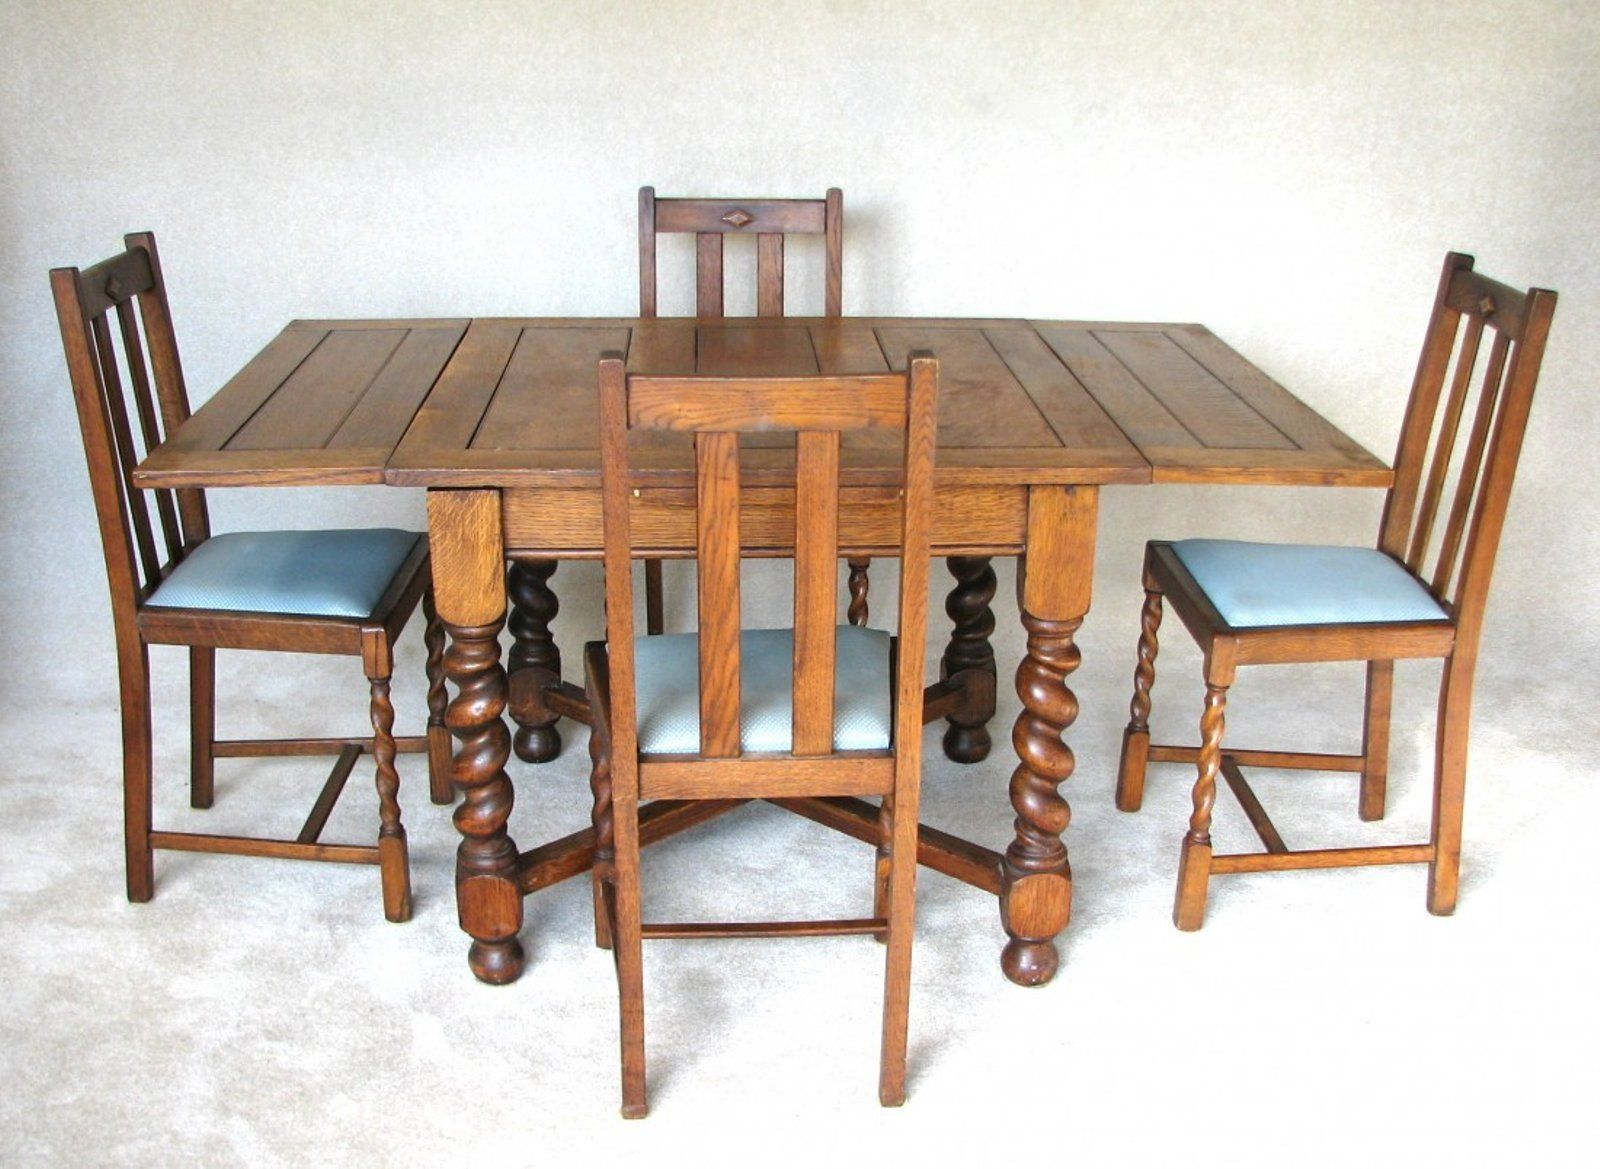 21 Vintage English Pub Table And Chairs Pub Table And Chairs